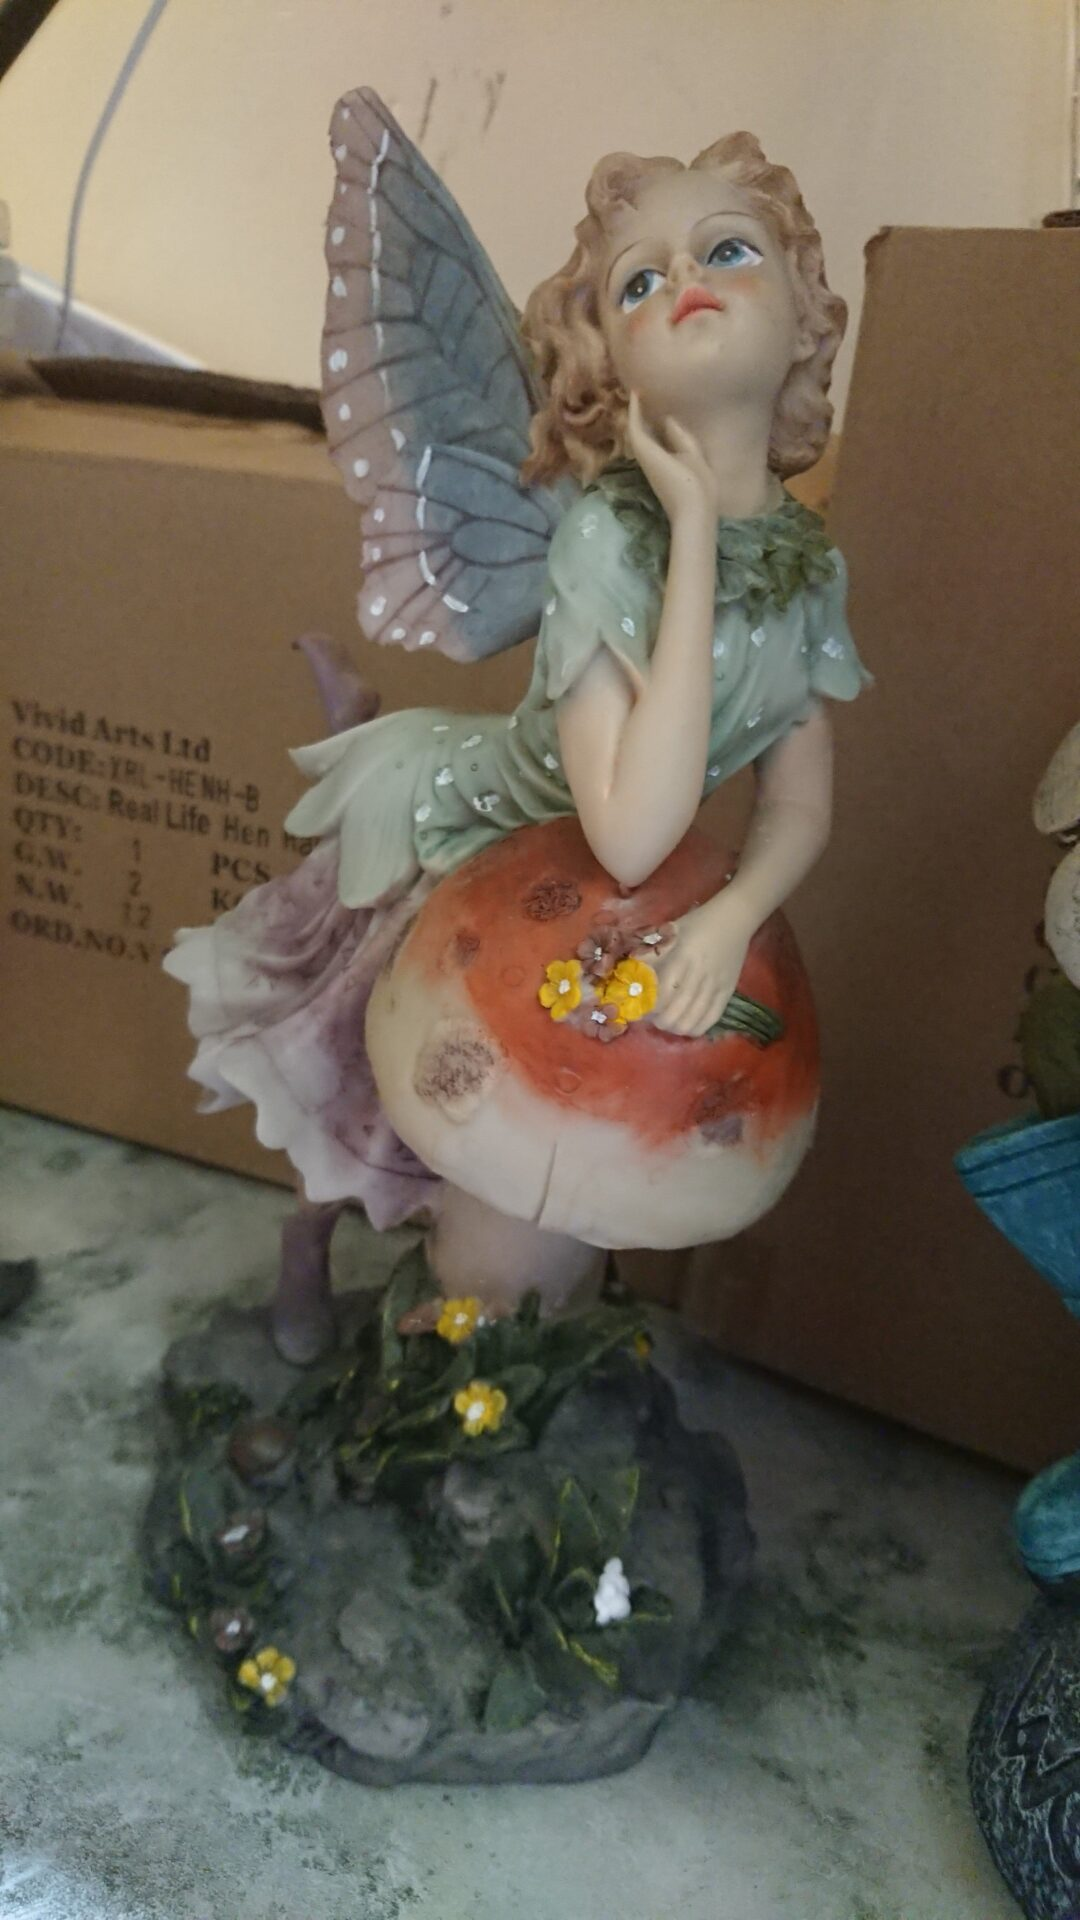 Moulded and painted stone fairy for the post my beautiful stone fairy.